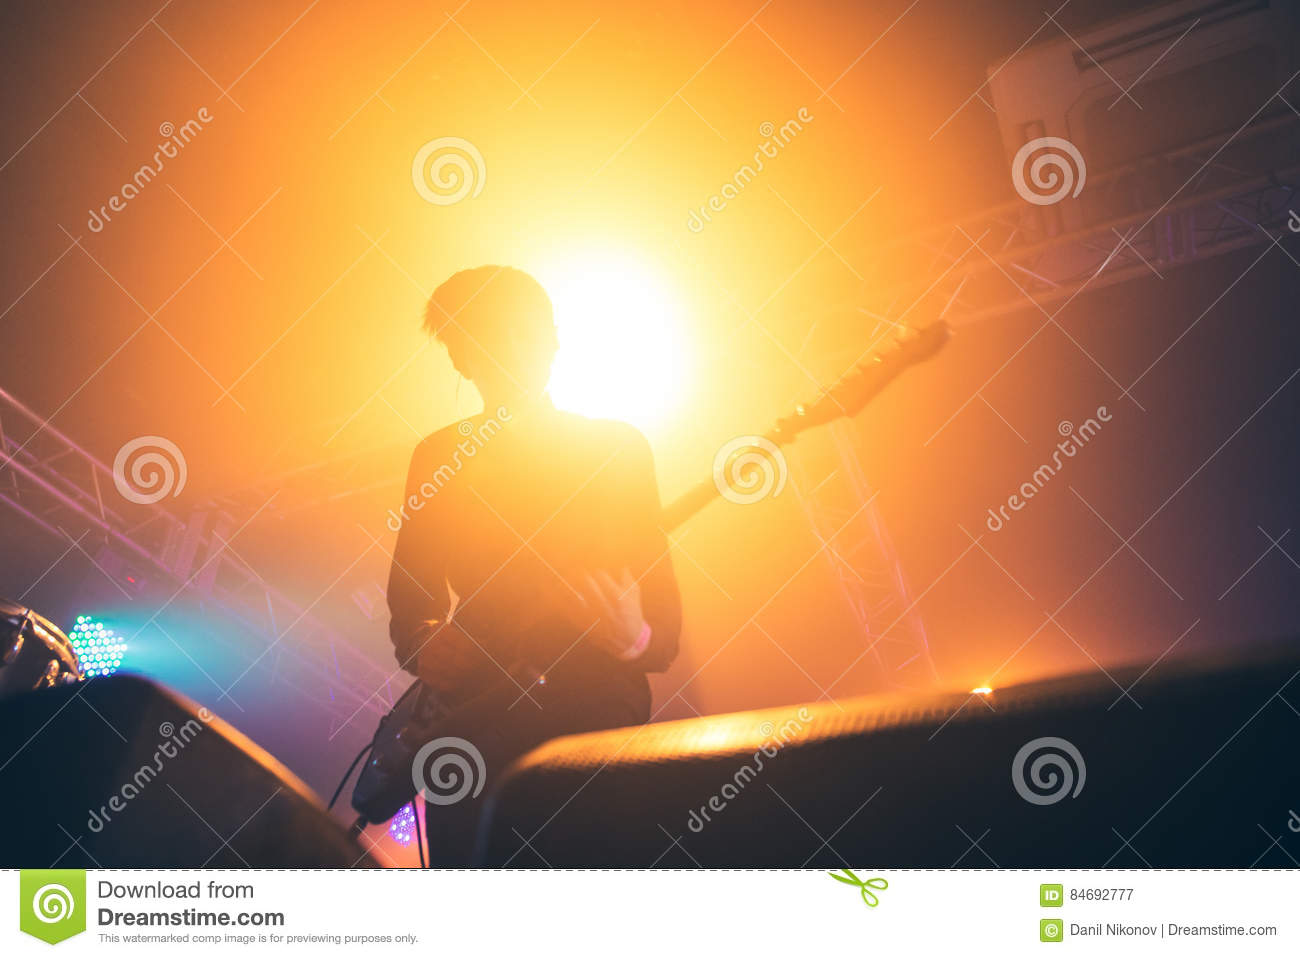 Download Rock Band Performs On Stage. Guitarist Plays Solo. Silhouette Of Guitar Player In Action On Stage In Front Of Concert Crowd. Stock Image - Image of back, closeup: 84692777